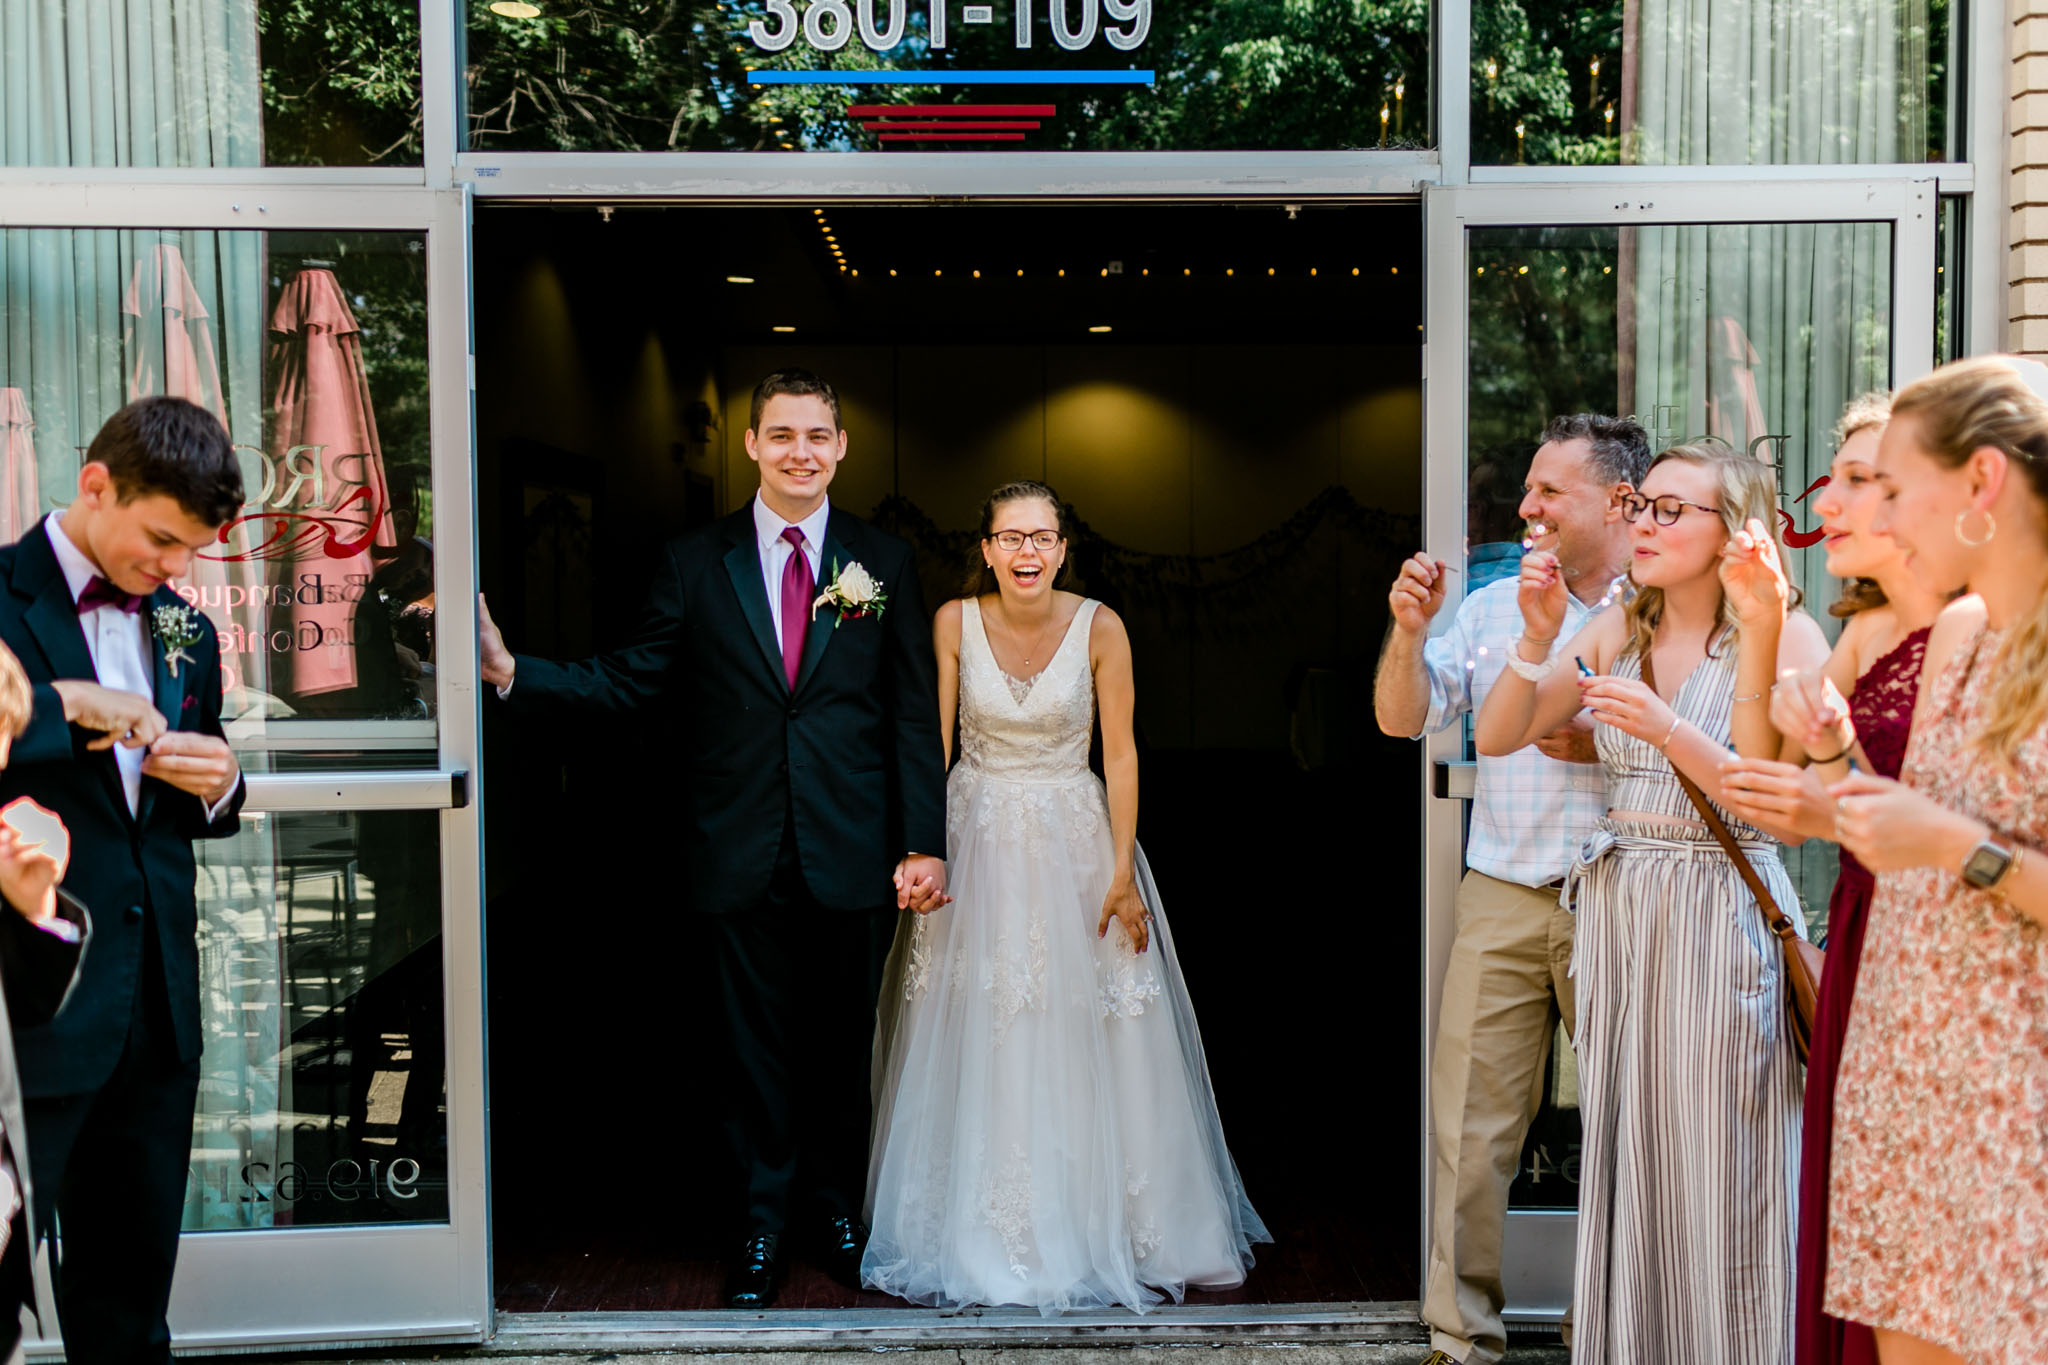 Bride and groom ready for sendoff | Royal Banquet Conference Center | Raleigh Wedding Photographer | By G. Lin Photography